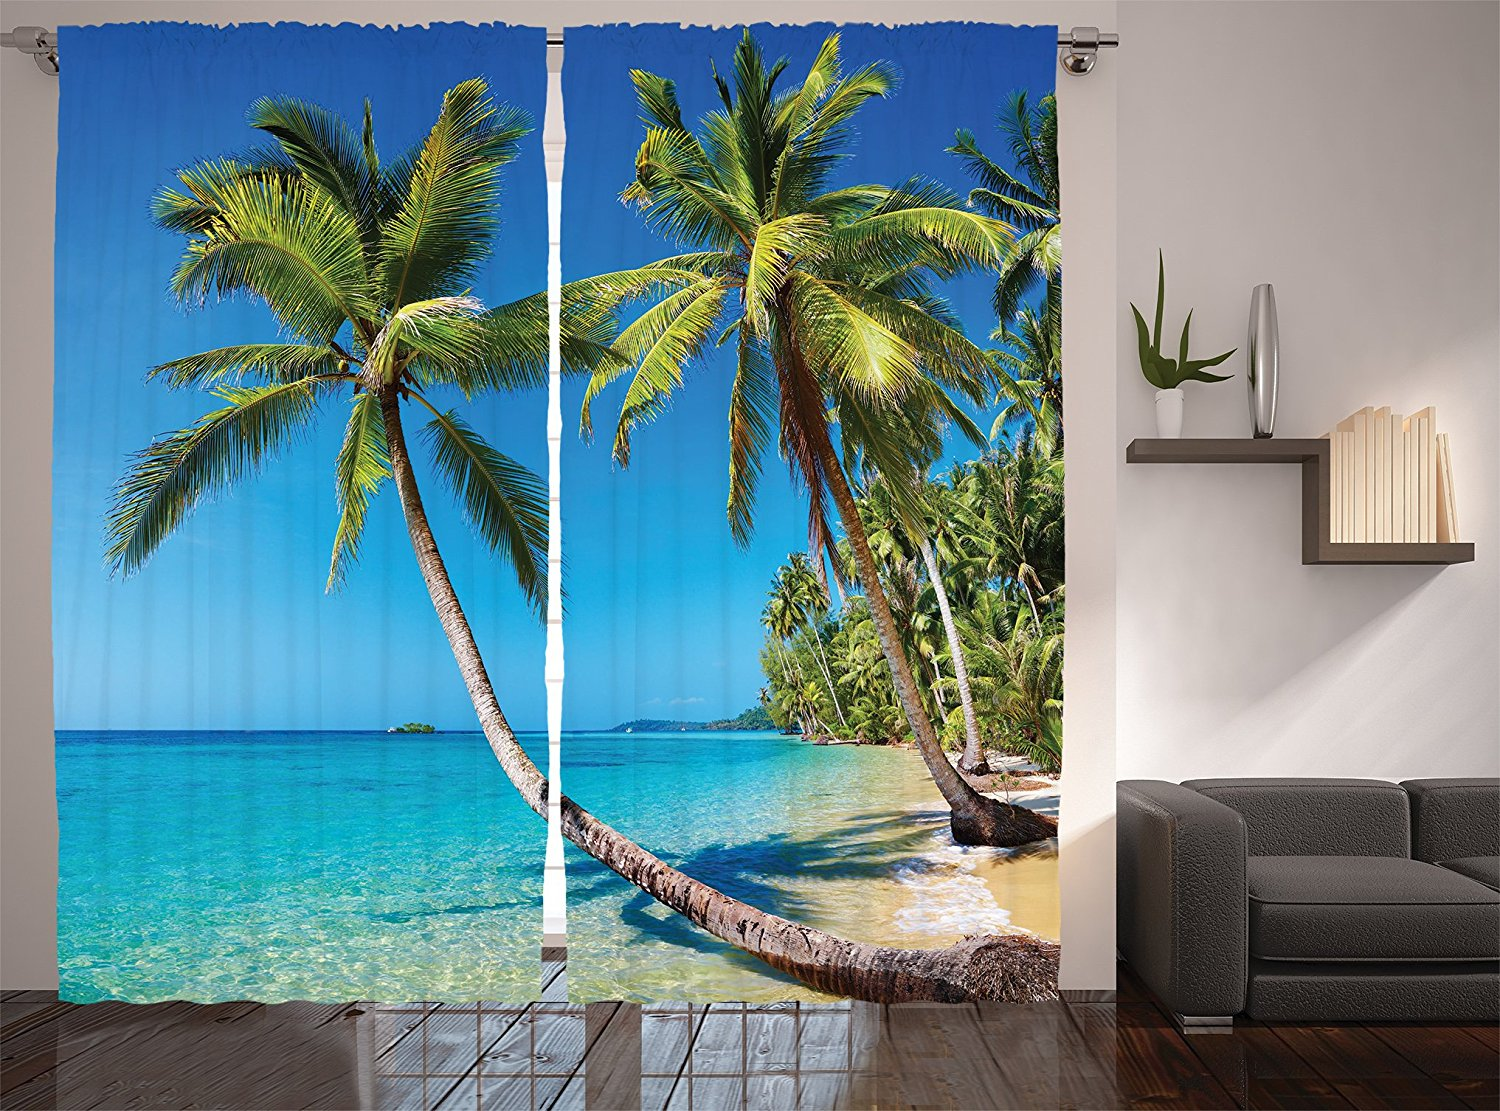 Ocean Tapestry Beach Kood Island Destination in Asian Tropical Palm Trees Landscape Print, Window Treatments Living Room